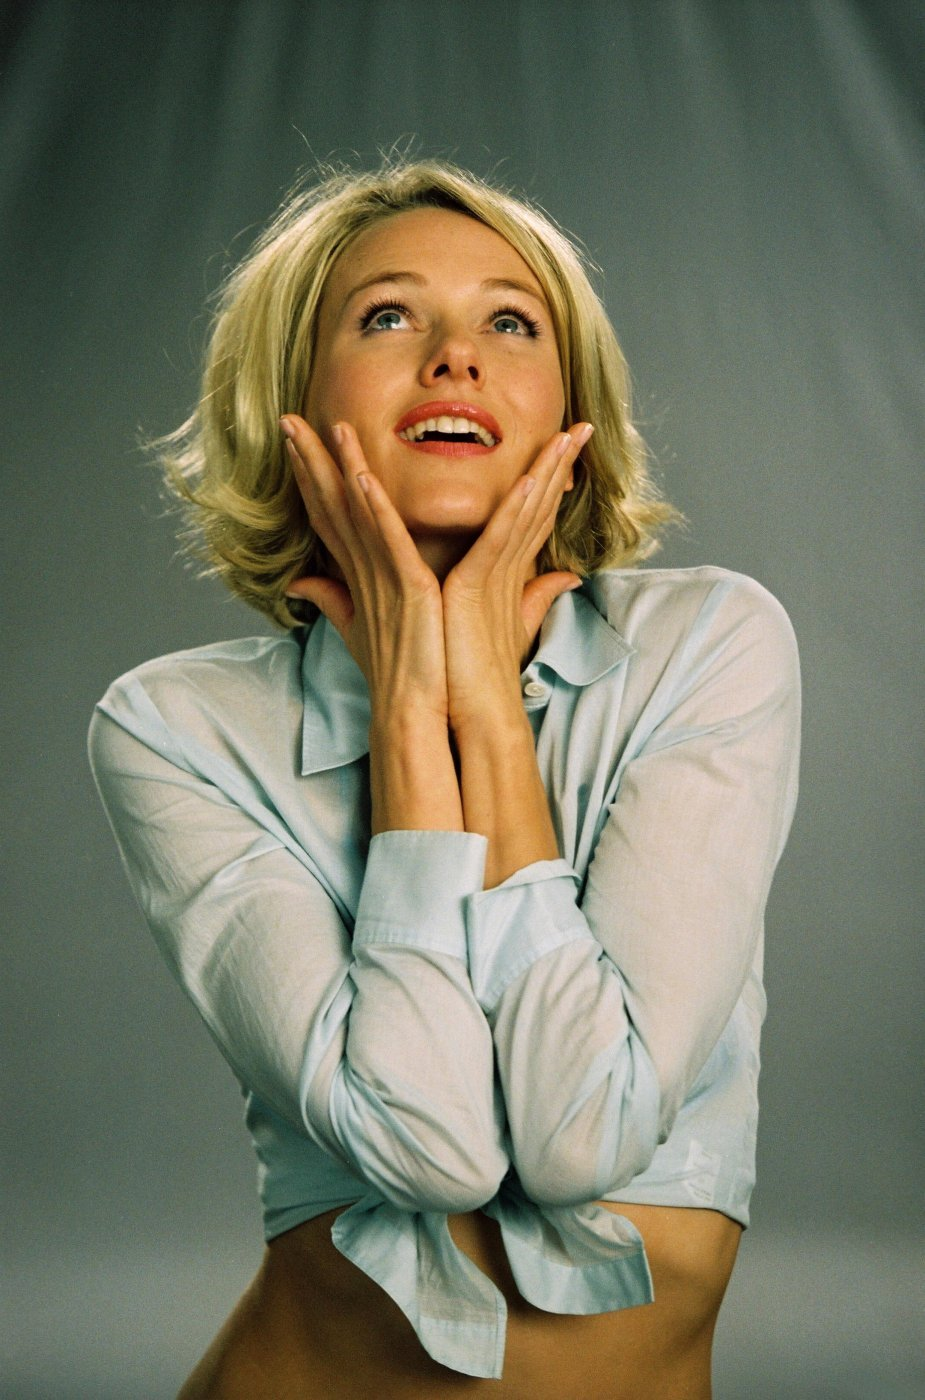 21 grams naomi watts amazing nipples - 2 part 10